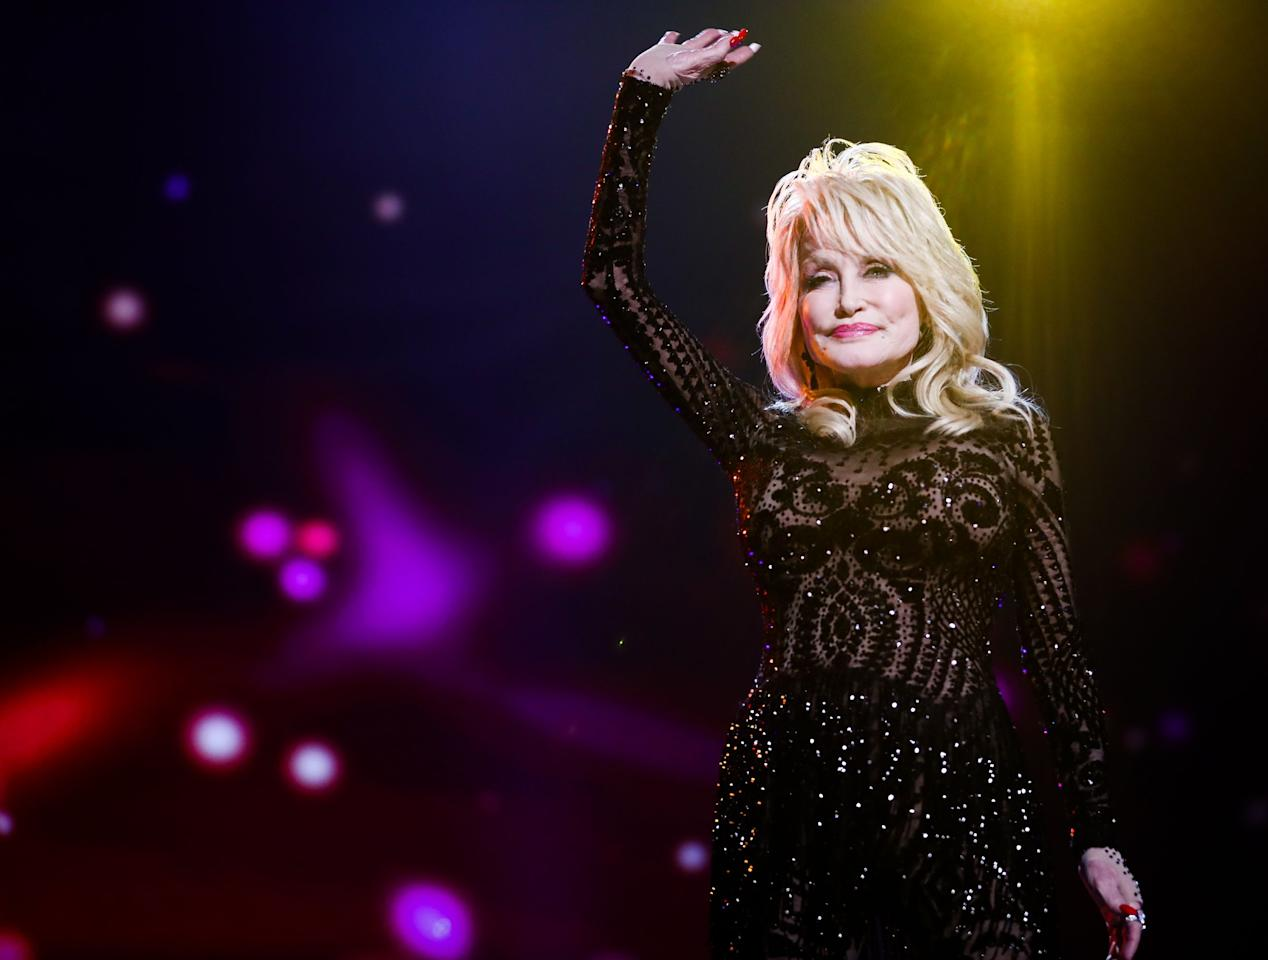 """<p>When you say the word iconic, Dolly Parton likely comes to mind. Despite her decades in the limelight, the 74-year-old country music star—who recently said she wanted to <a href=""""https://www.oprahmag.com/entertainment/a31282687/dolly-parton-playboy-cover/"""" target=""""_blank"""">recreate her famous <em>Playboy</em> cover</a> for her 75th birthday—is not going anywhere, anytime soon. The """"9 to 5"""" singer has been busy <a href=""""https://www.oprahmag.com/entertainment/g30380825/dolly-parton-style-evolution/"""" target=""""_blank"""">making fashion statements</a>, starting the viral <a href=""""https://www.oprahmag.com/entertainment/a30654644/dolly-parton-meme-challenge-how-to/"""" target=""""_blank"""">#DollyPartonChallenge</a>, spending time with her <a href=""""https://www.oprahmag.com/life/relationships-love/a25629890/dolly-parton-carl-thomas-dean-marriage/"""" target=""""_blank"""">husband of over 53 years, Carl Thomas Dean</a>, releasing <a href=""""https://www.oprahmag.com/entertainment/a29846345/hearstrings-dolly-parton-netflix-episodes-premiere-cast/"""" target=""""_blank"""">a Netflix show</a>, and <a href=""""https://www.oprahmag.com/entertainment/a28134640/dolly-parton-favorite-books/"""" target=""""_blank"""">reading 50 books a year</a>. Luckily, through her songs, books, social media, and interviews, she's blessed us with pearls of wisdom from her own life—""""Dollyisms,"""" if you will. So, we rounded up 26 funny, inspiring and honest quotes from Dolly Parton herself about love, marriage, life, work, and, yes, one of her, err, famous attributes.</p>"""